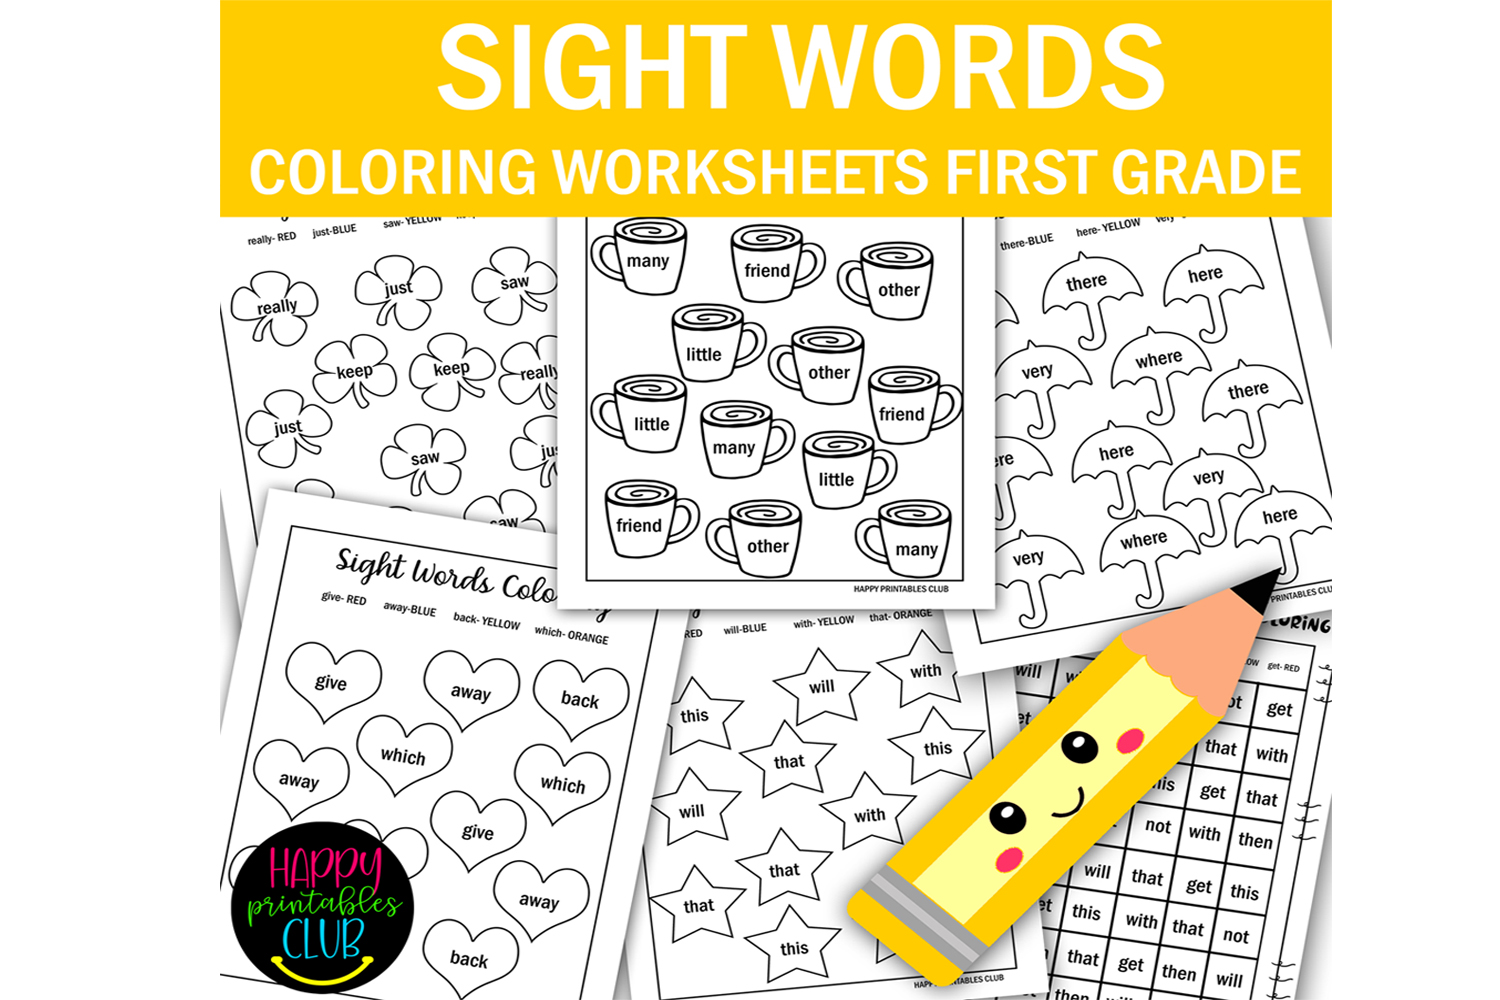 - First Grade Sight Words Coloring Pages (Graphic) By Happy